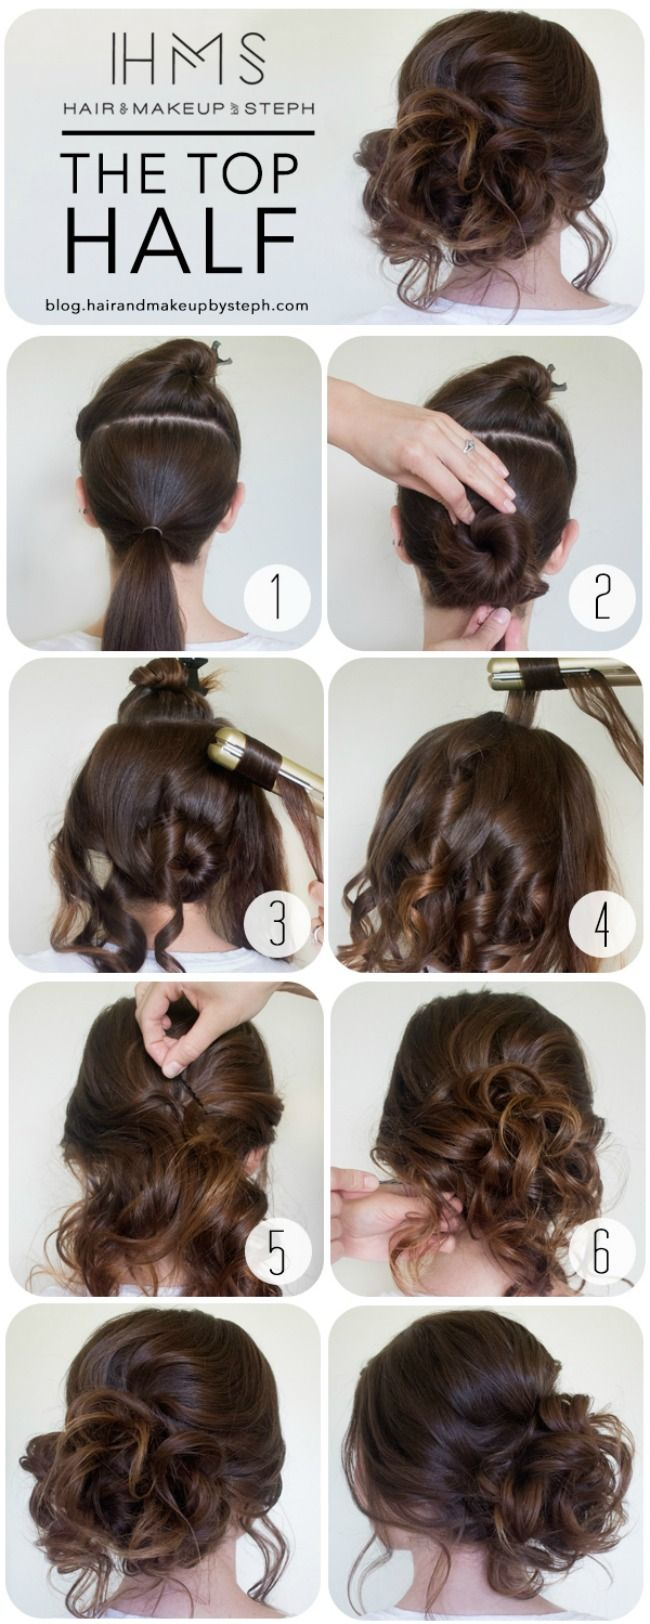 From braided buns to a messy pretzel chignon here are The 11 Best Easy Updo Hairstyles we could find.